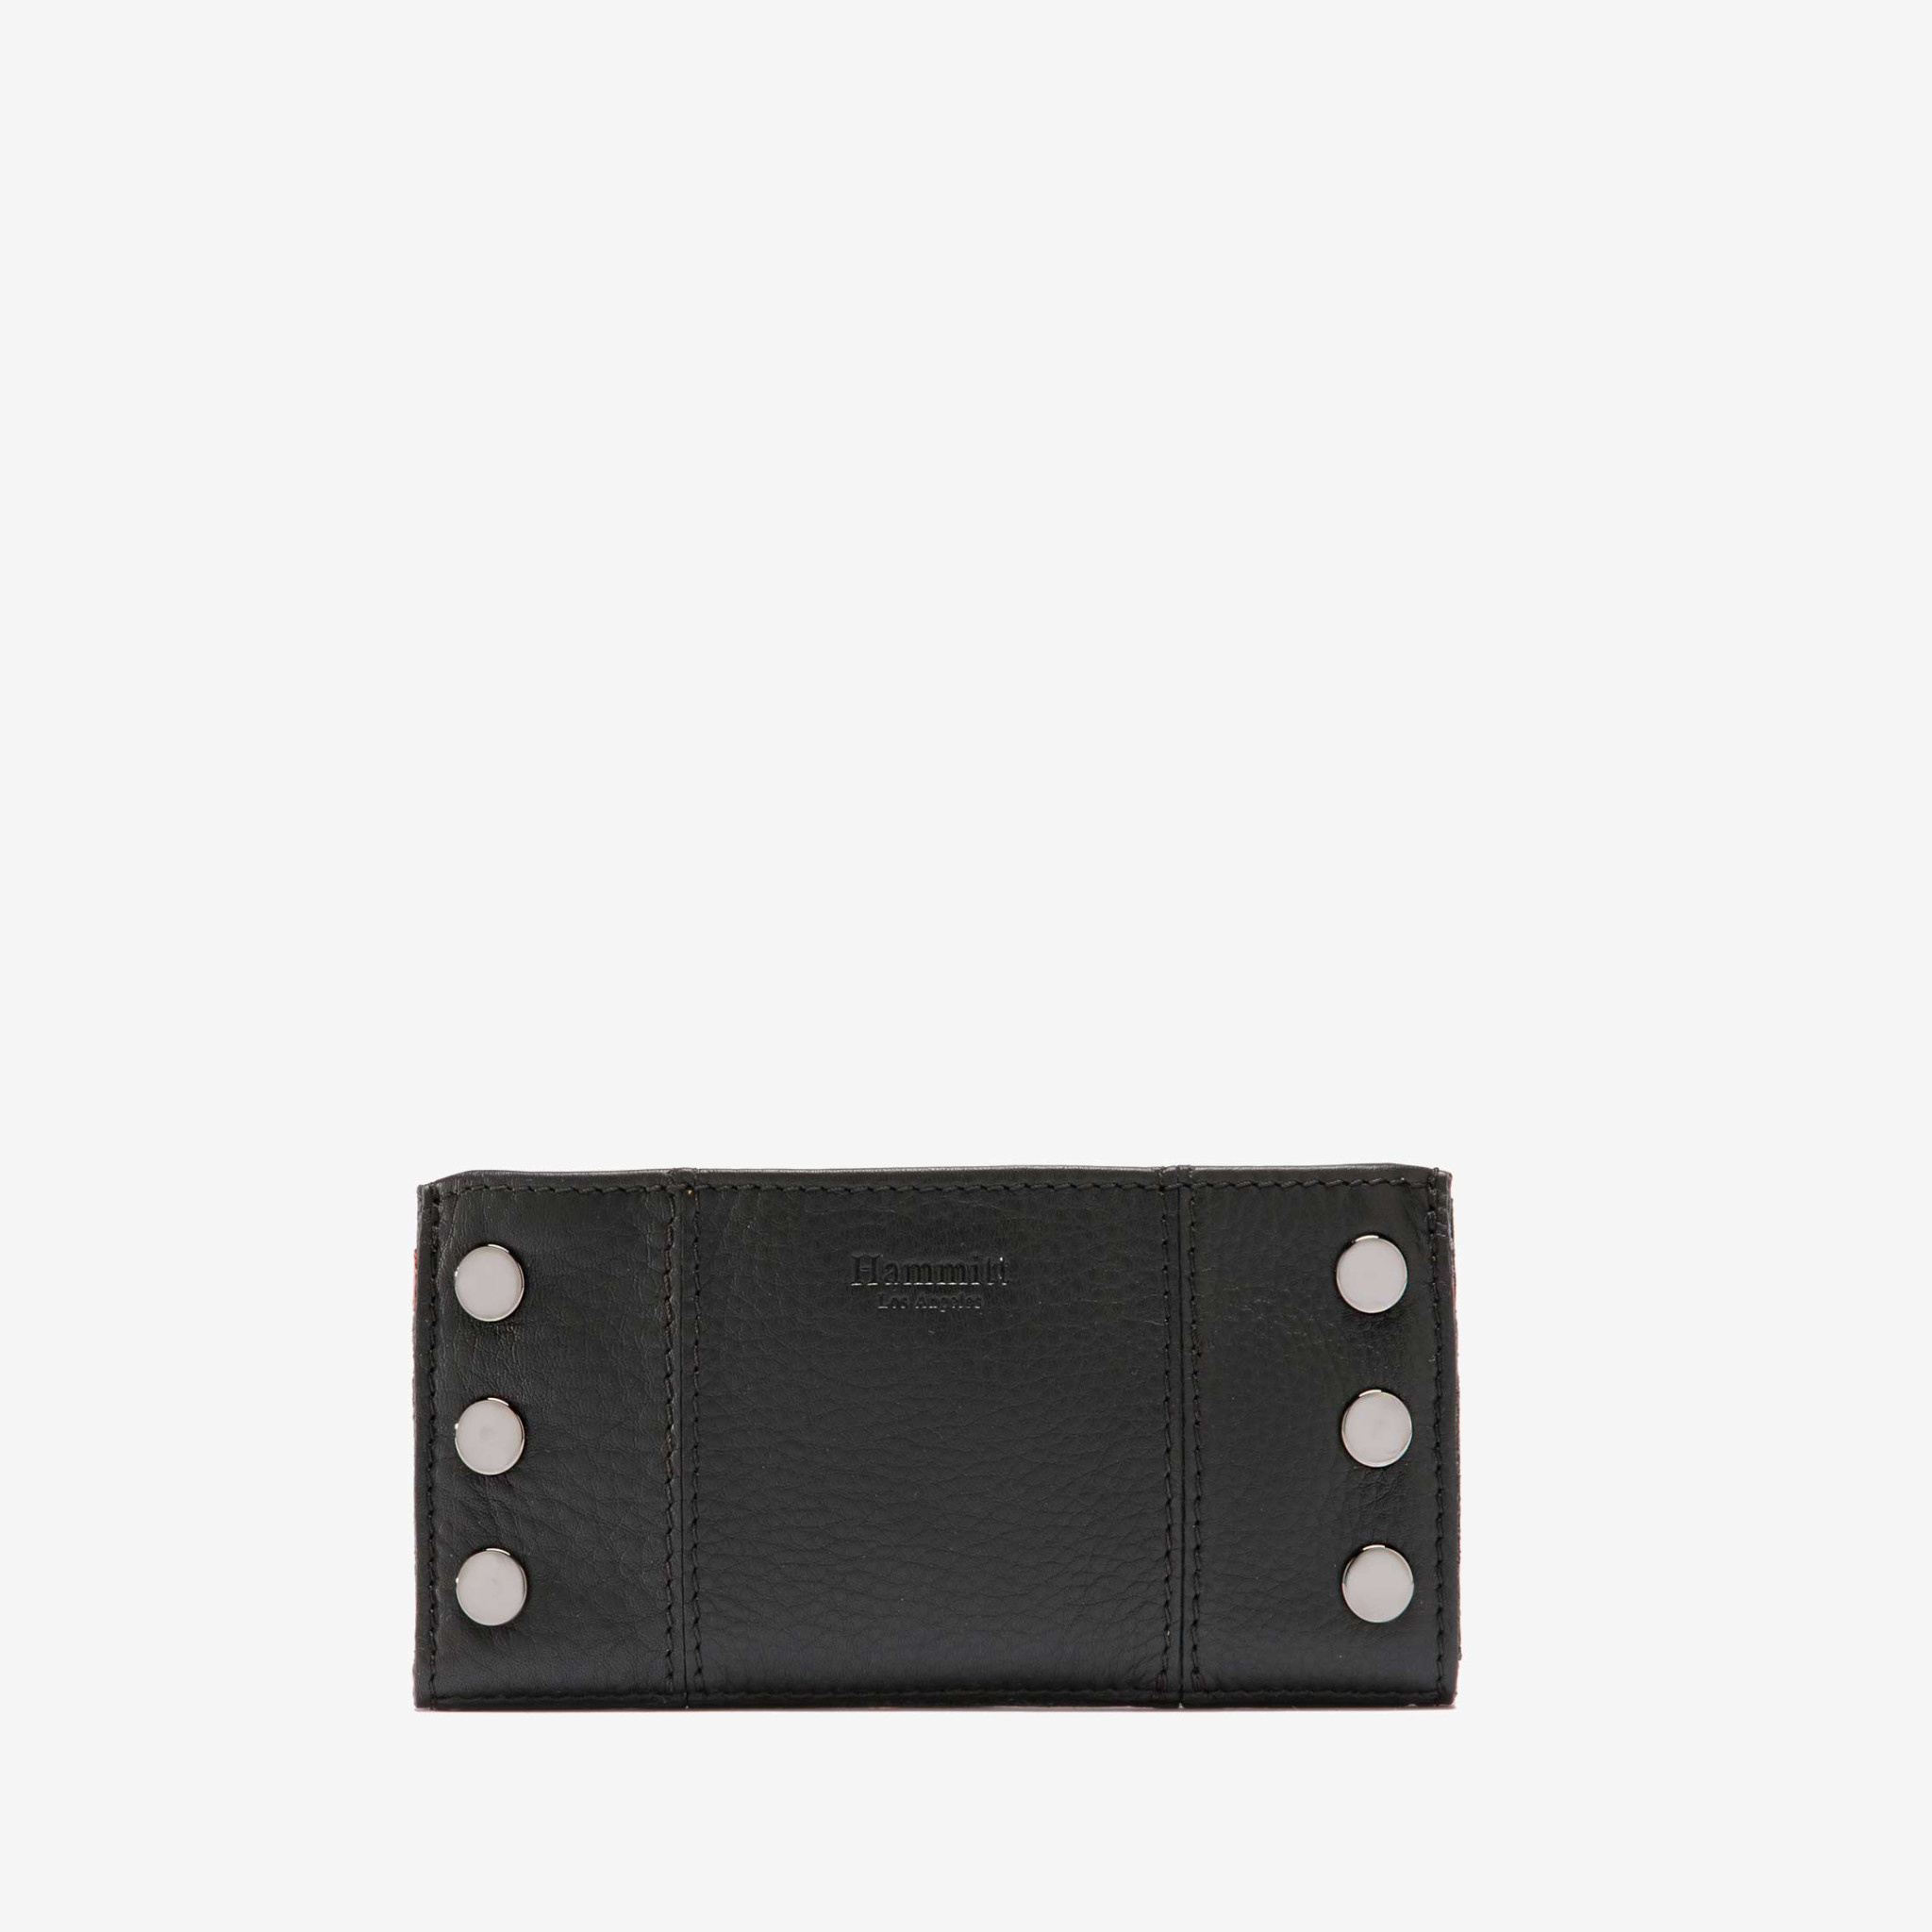 Hammitt 110 North Wallet- Black w Gunmetal